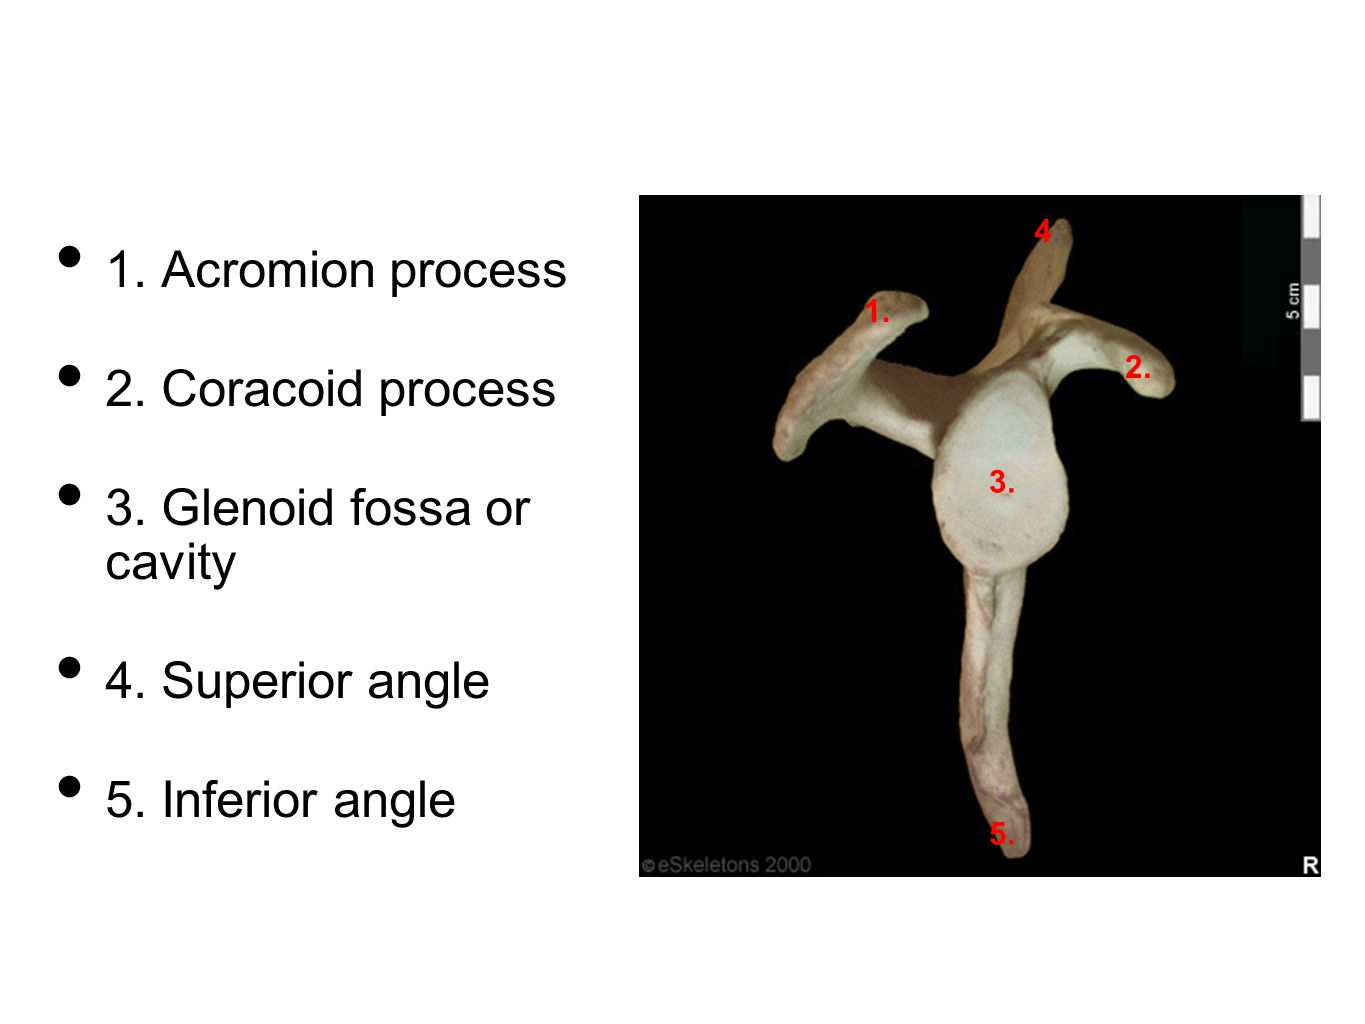 1. Acromion process 2. Coracoid process 3. Glenoid fossa or cavity 4. Superior angle 5. Inferior angle 1. 2. 3. 4.4. 5.